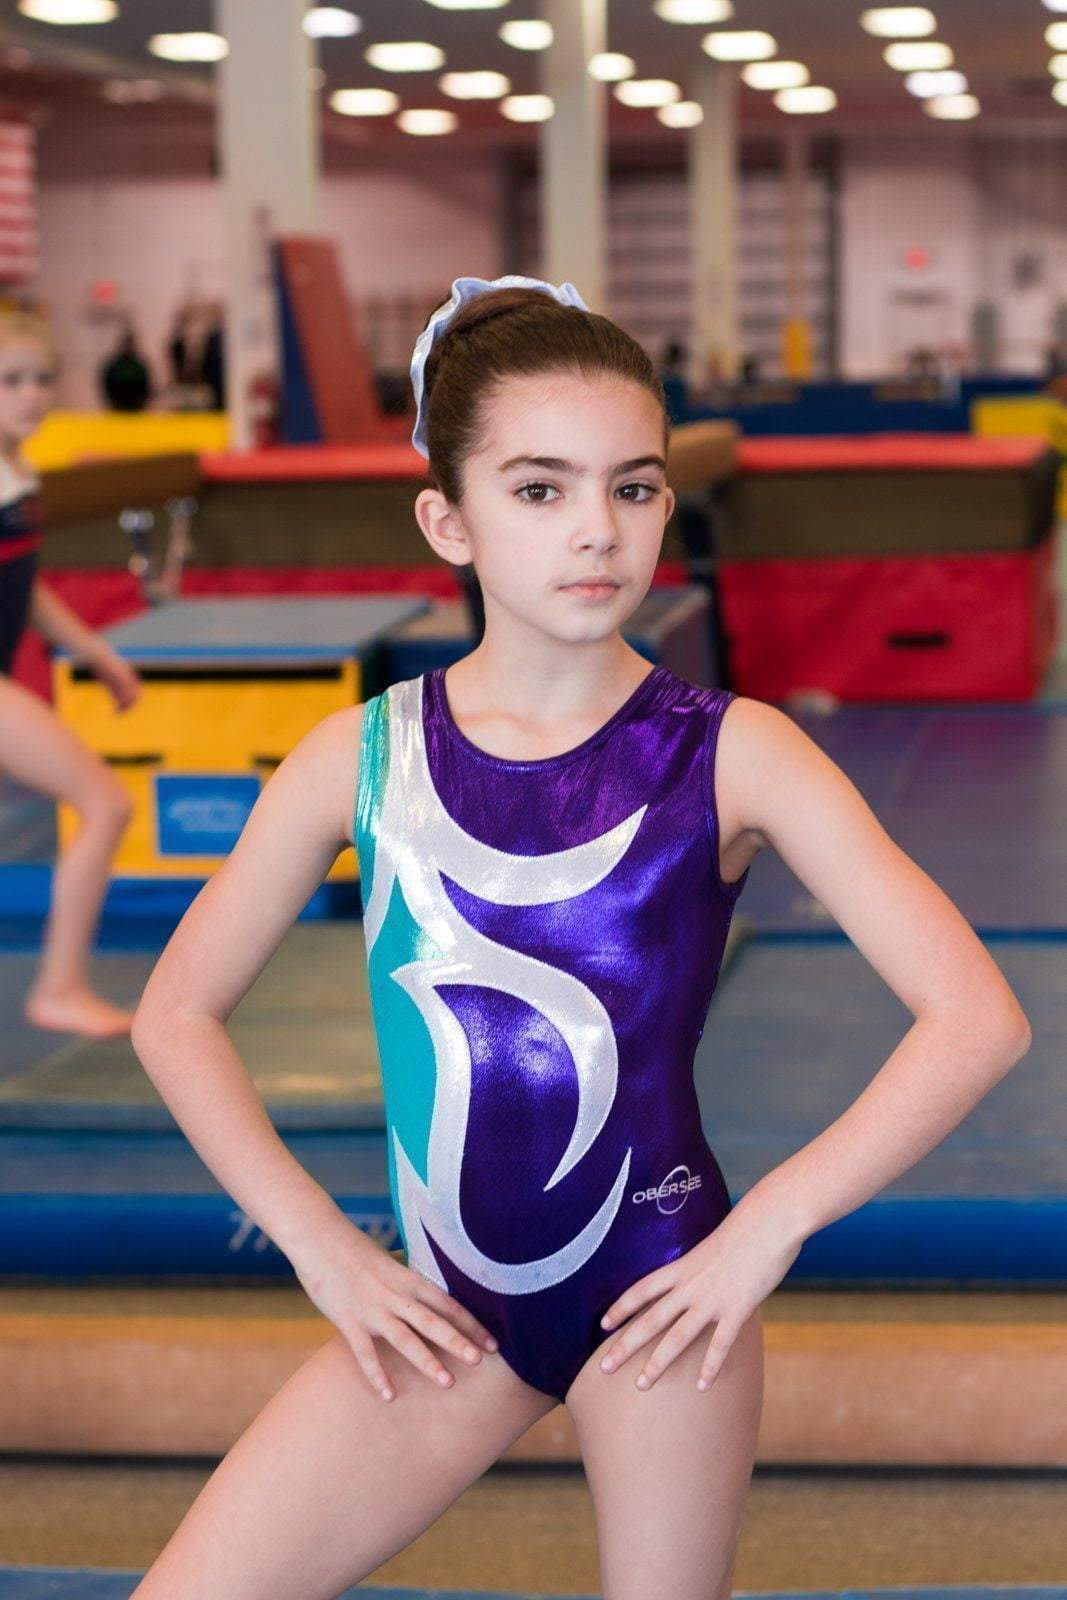 e22051d40512 Obersee Leotard for Gymnastics - Abby Purple